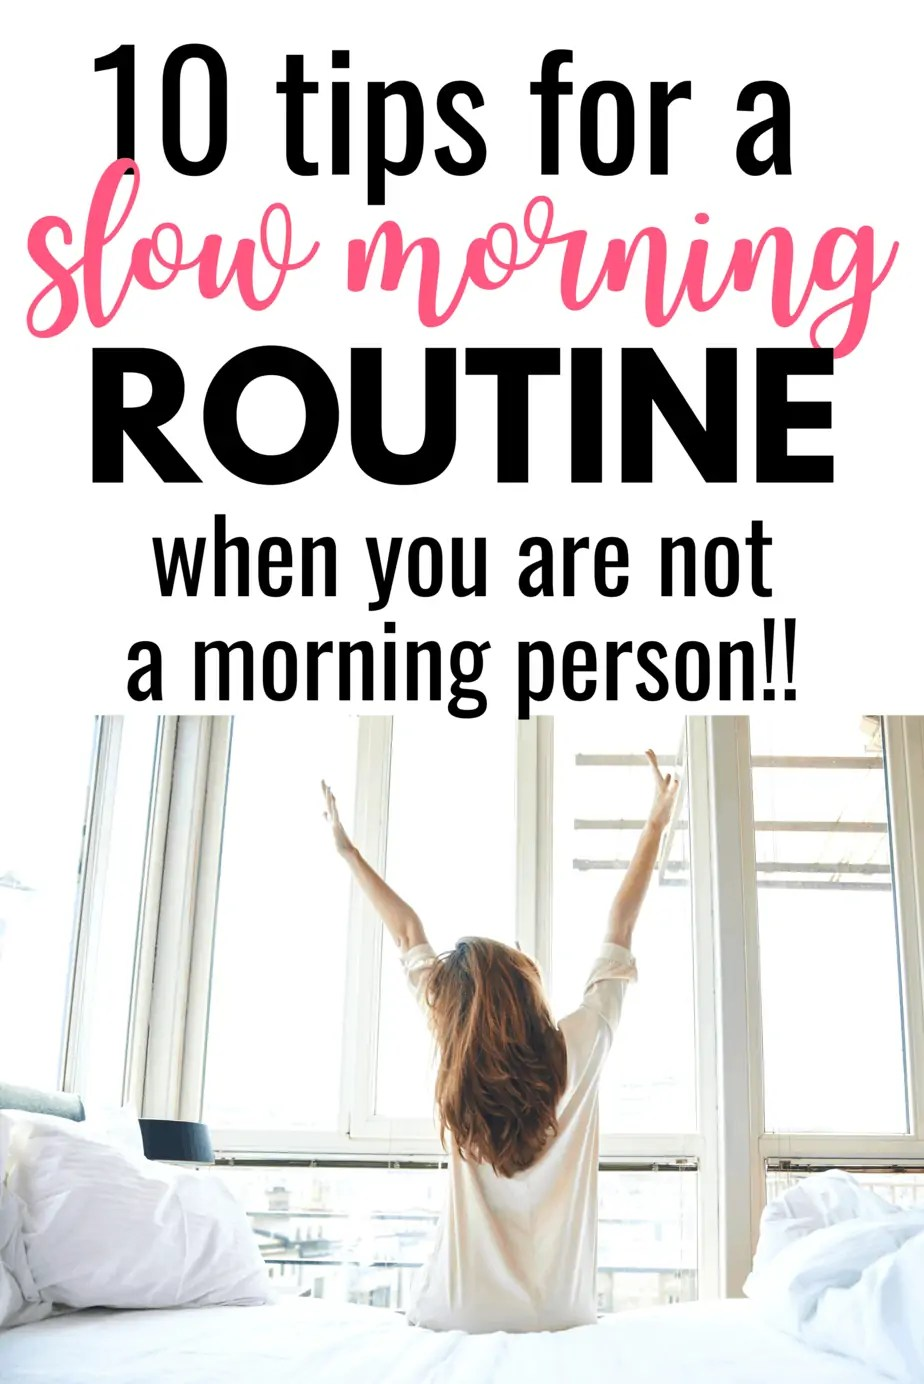 If you don't love waking up first thing in the morning but want a successful morning routine, try these 10 tips for a slow morning kick-start.